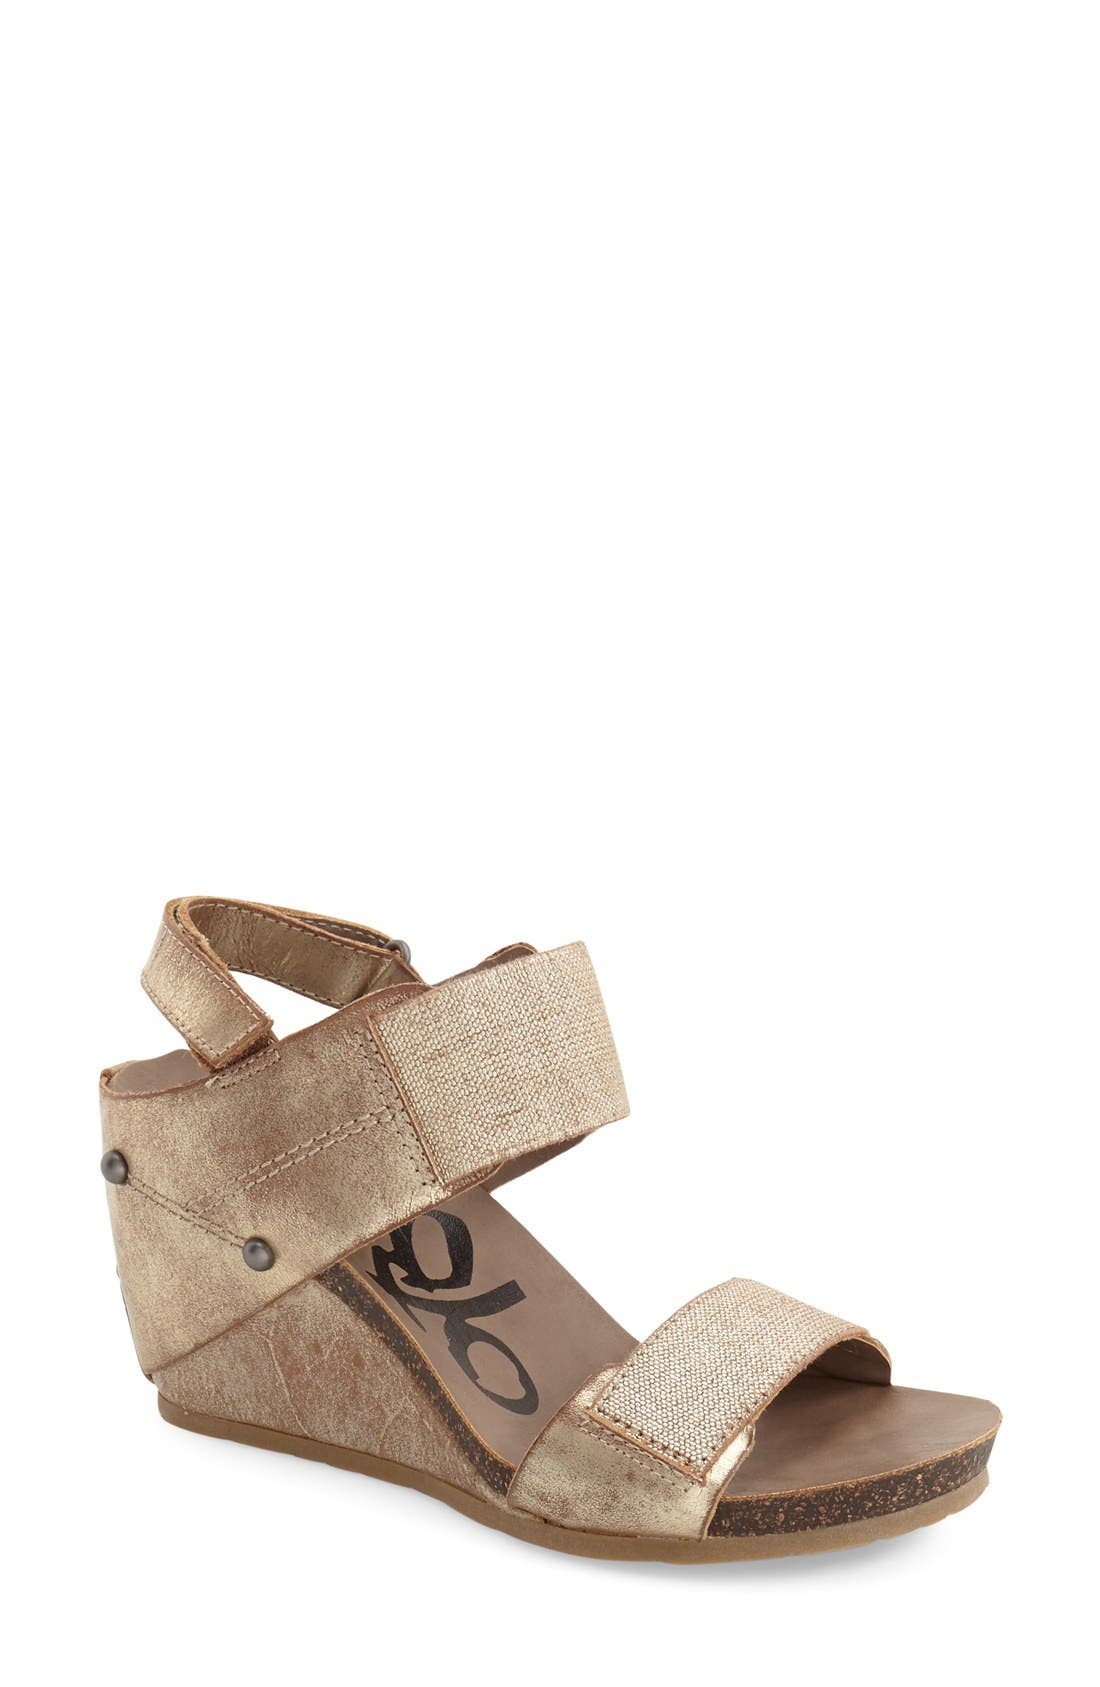 OTBT 'Trailblazer' Wedge Sandal (Women)